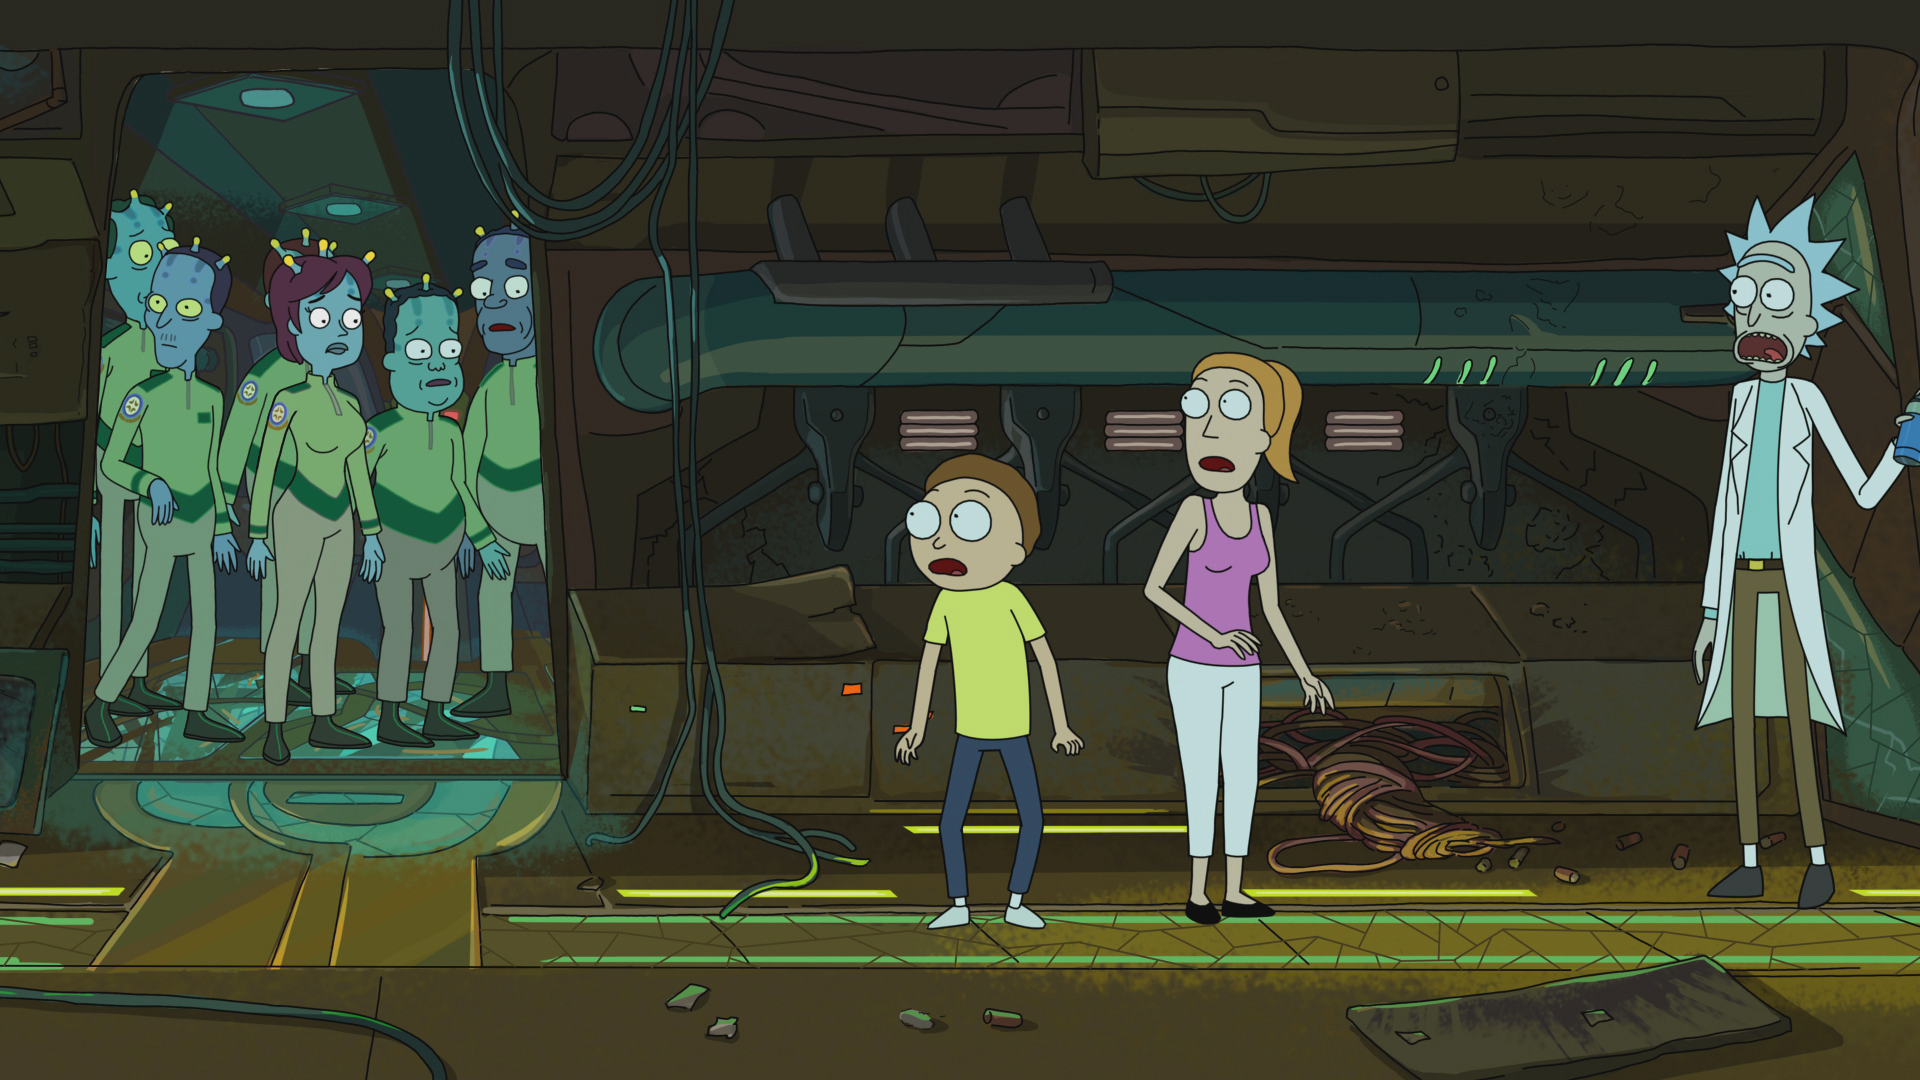 'Rick and Morty' for People Who Aren't 'Rick and Morty' Fans